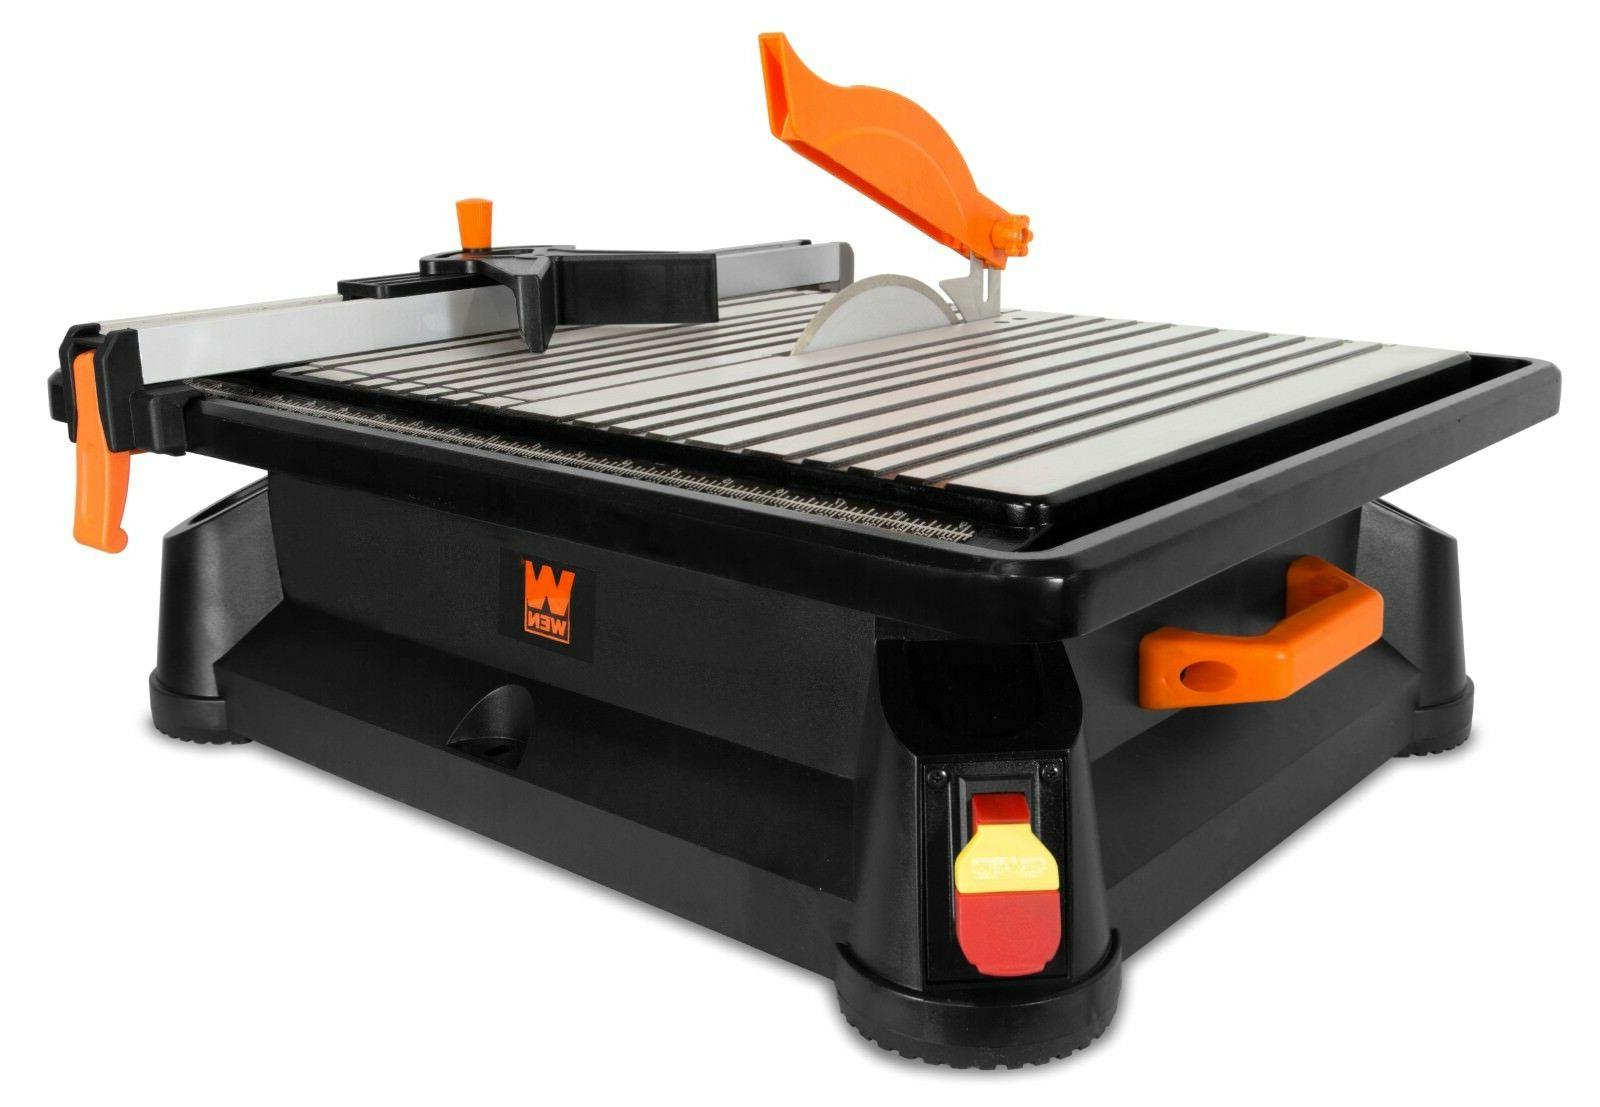 5a portable wet tile saw